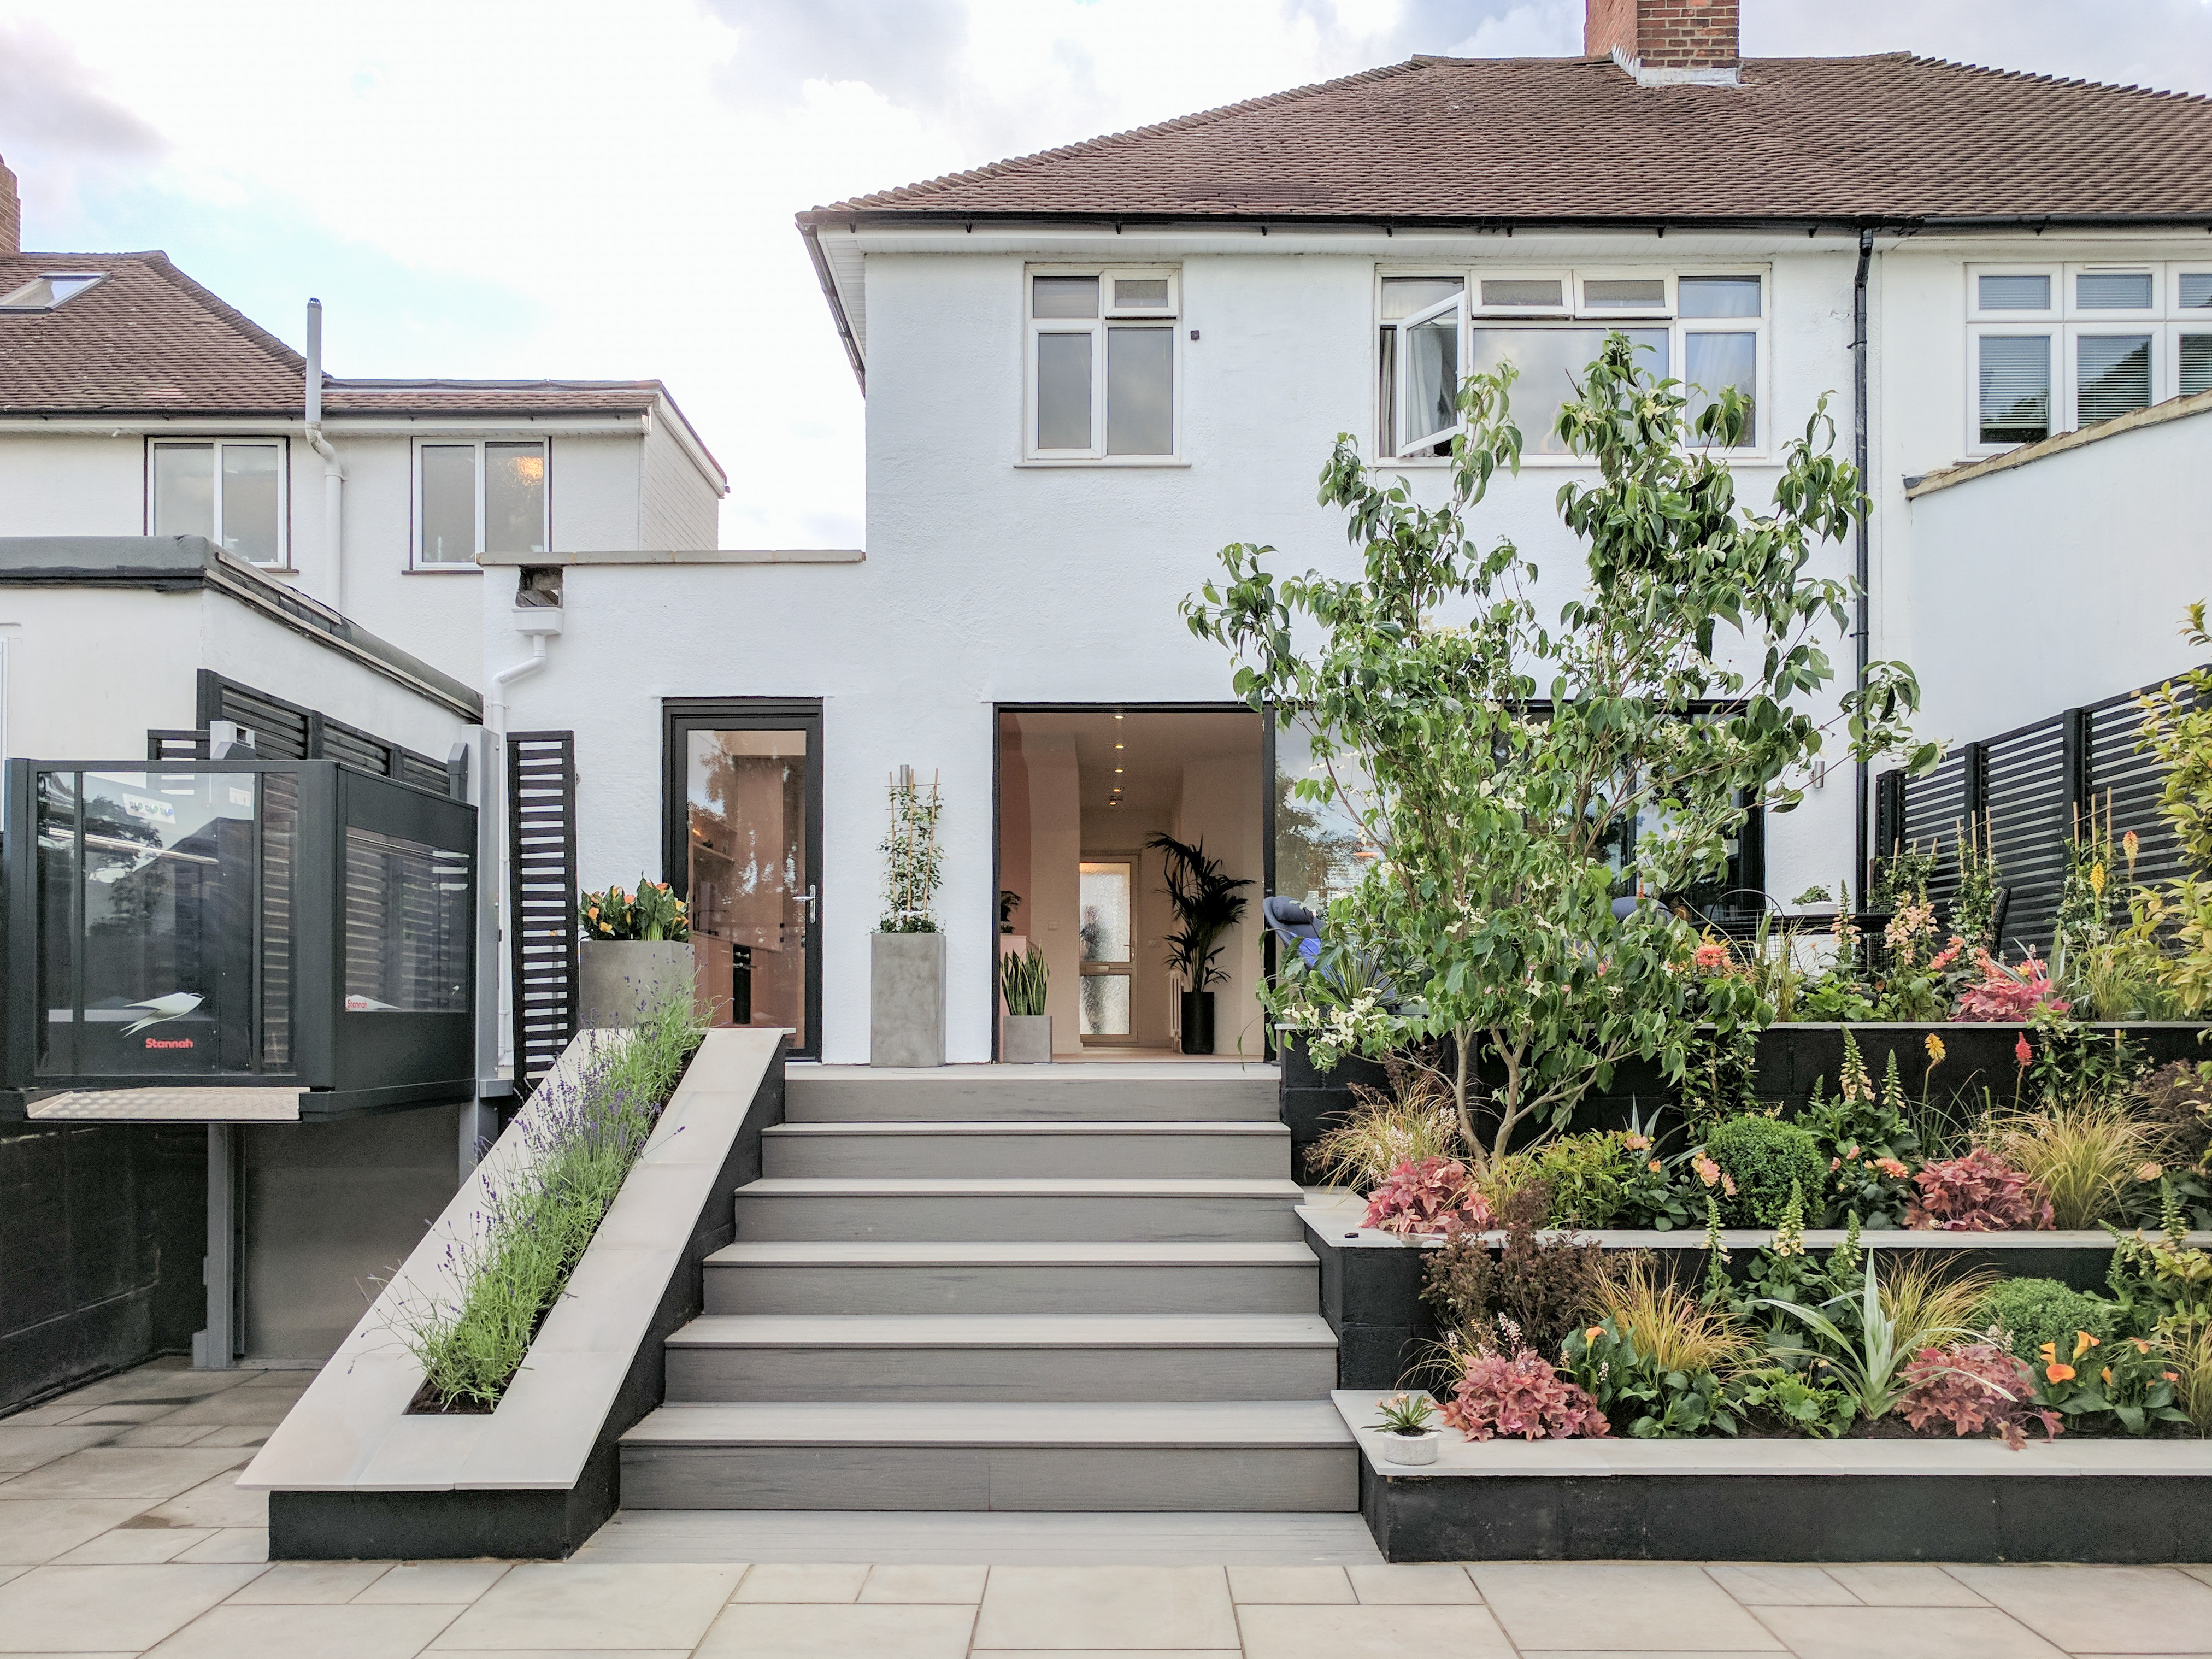 Front facade of the refurbished house including large sliding doors and planting.